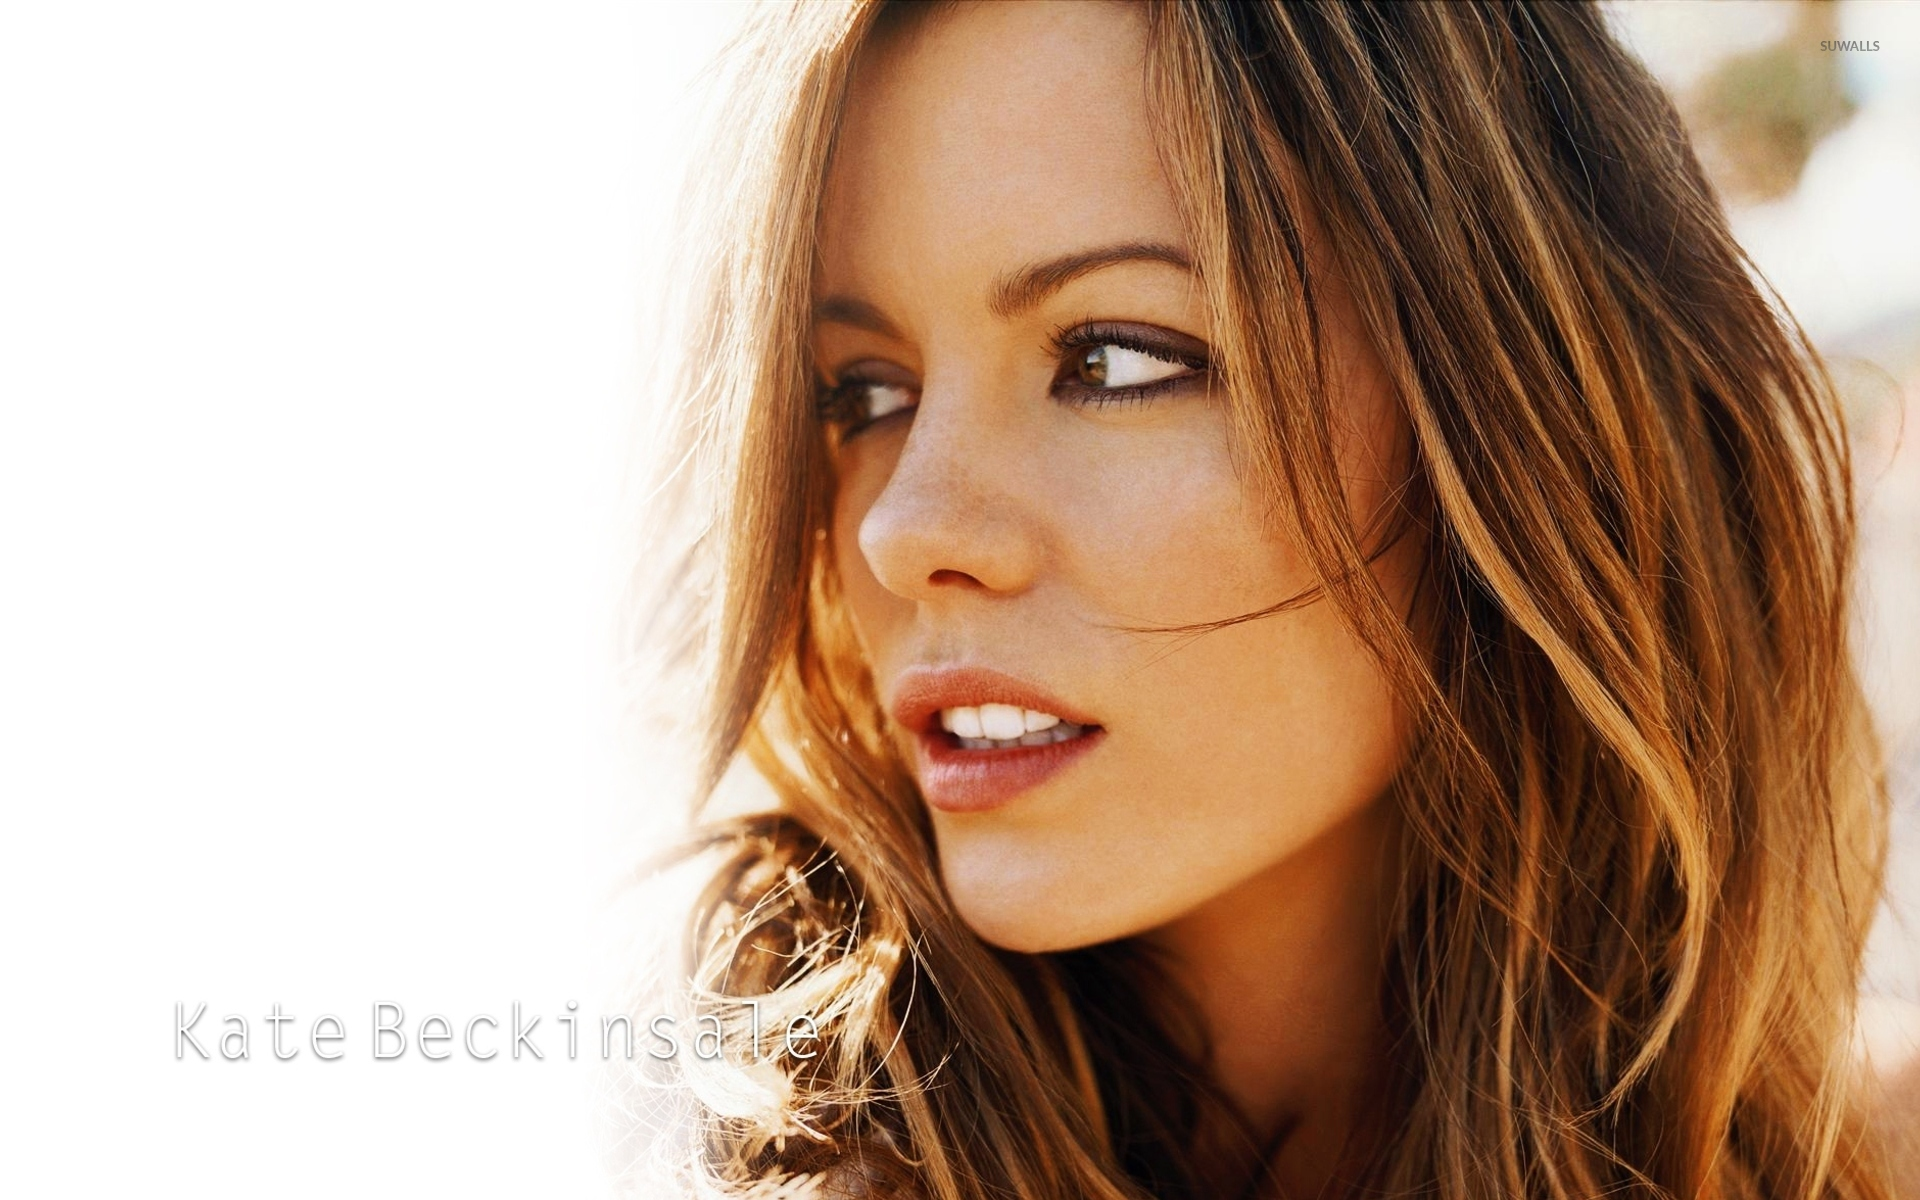 Kate Beckinsale 2 Wallpaper Celebrity Wallpapers 2448